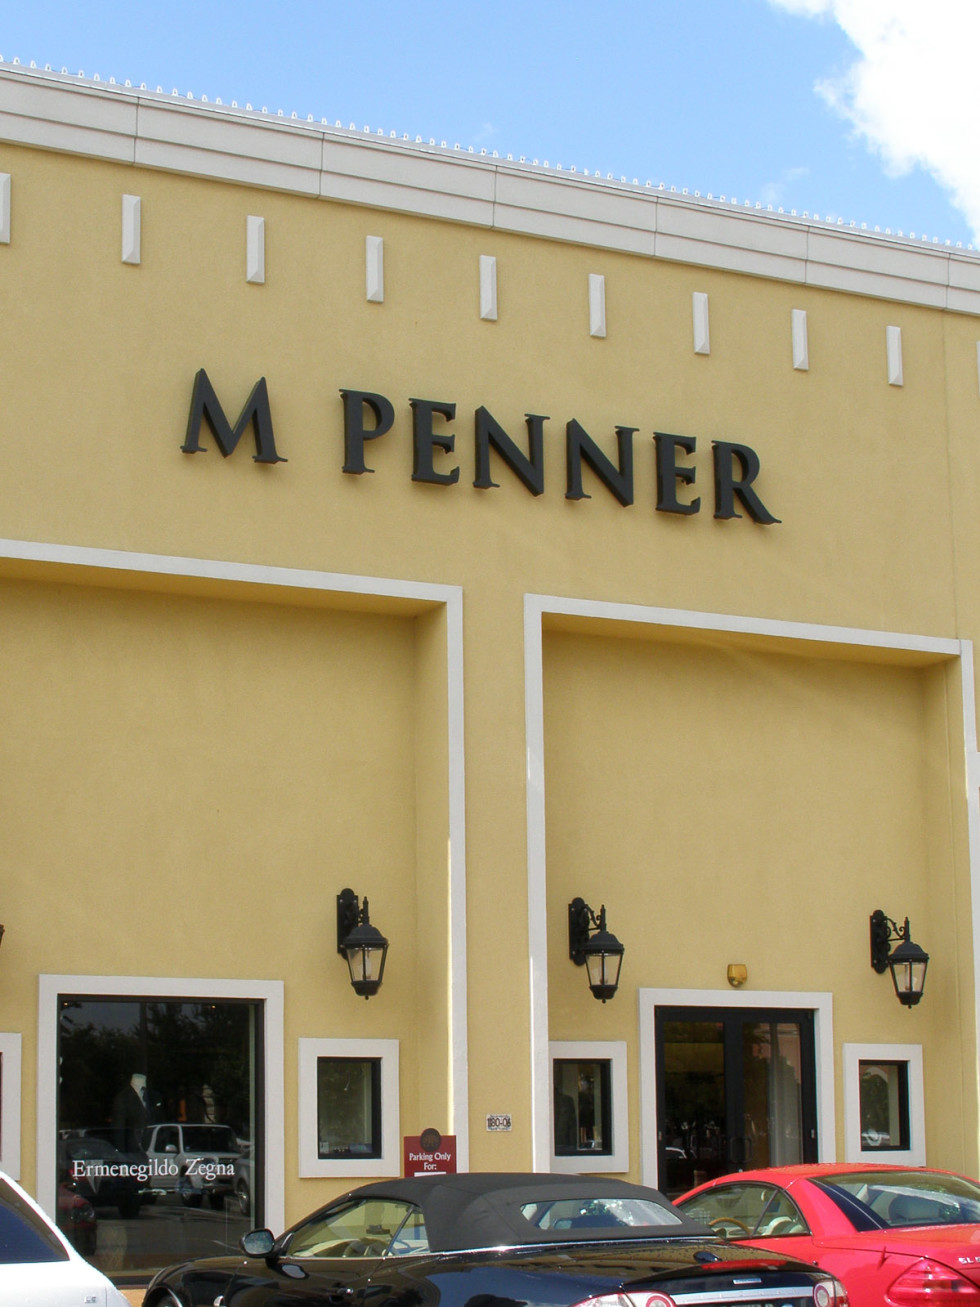 Places-Shopping-M Penner